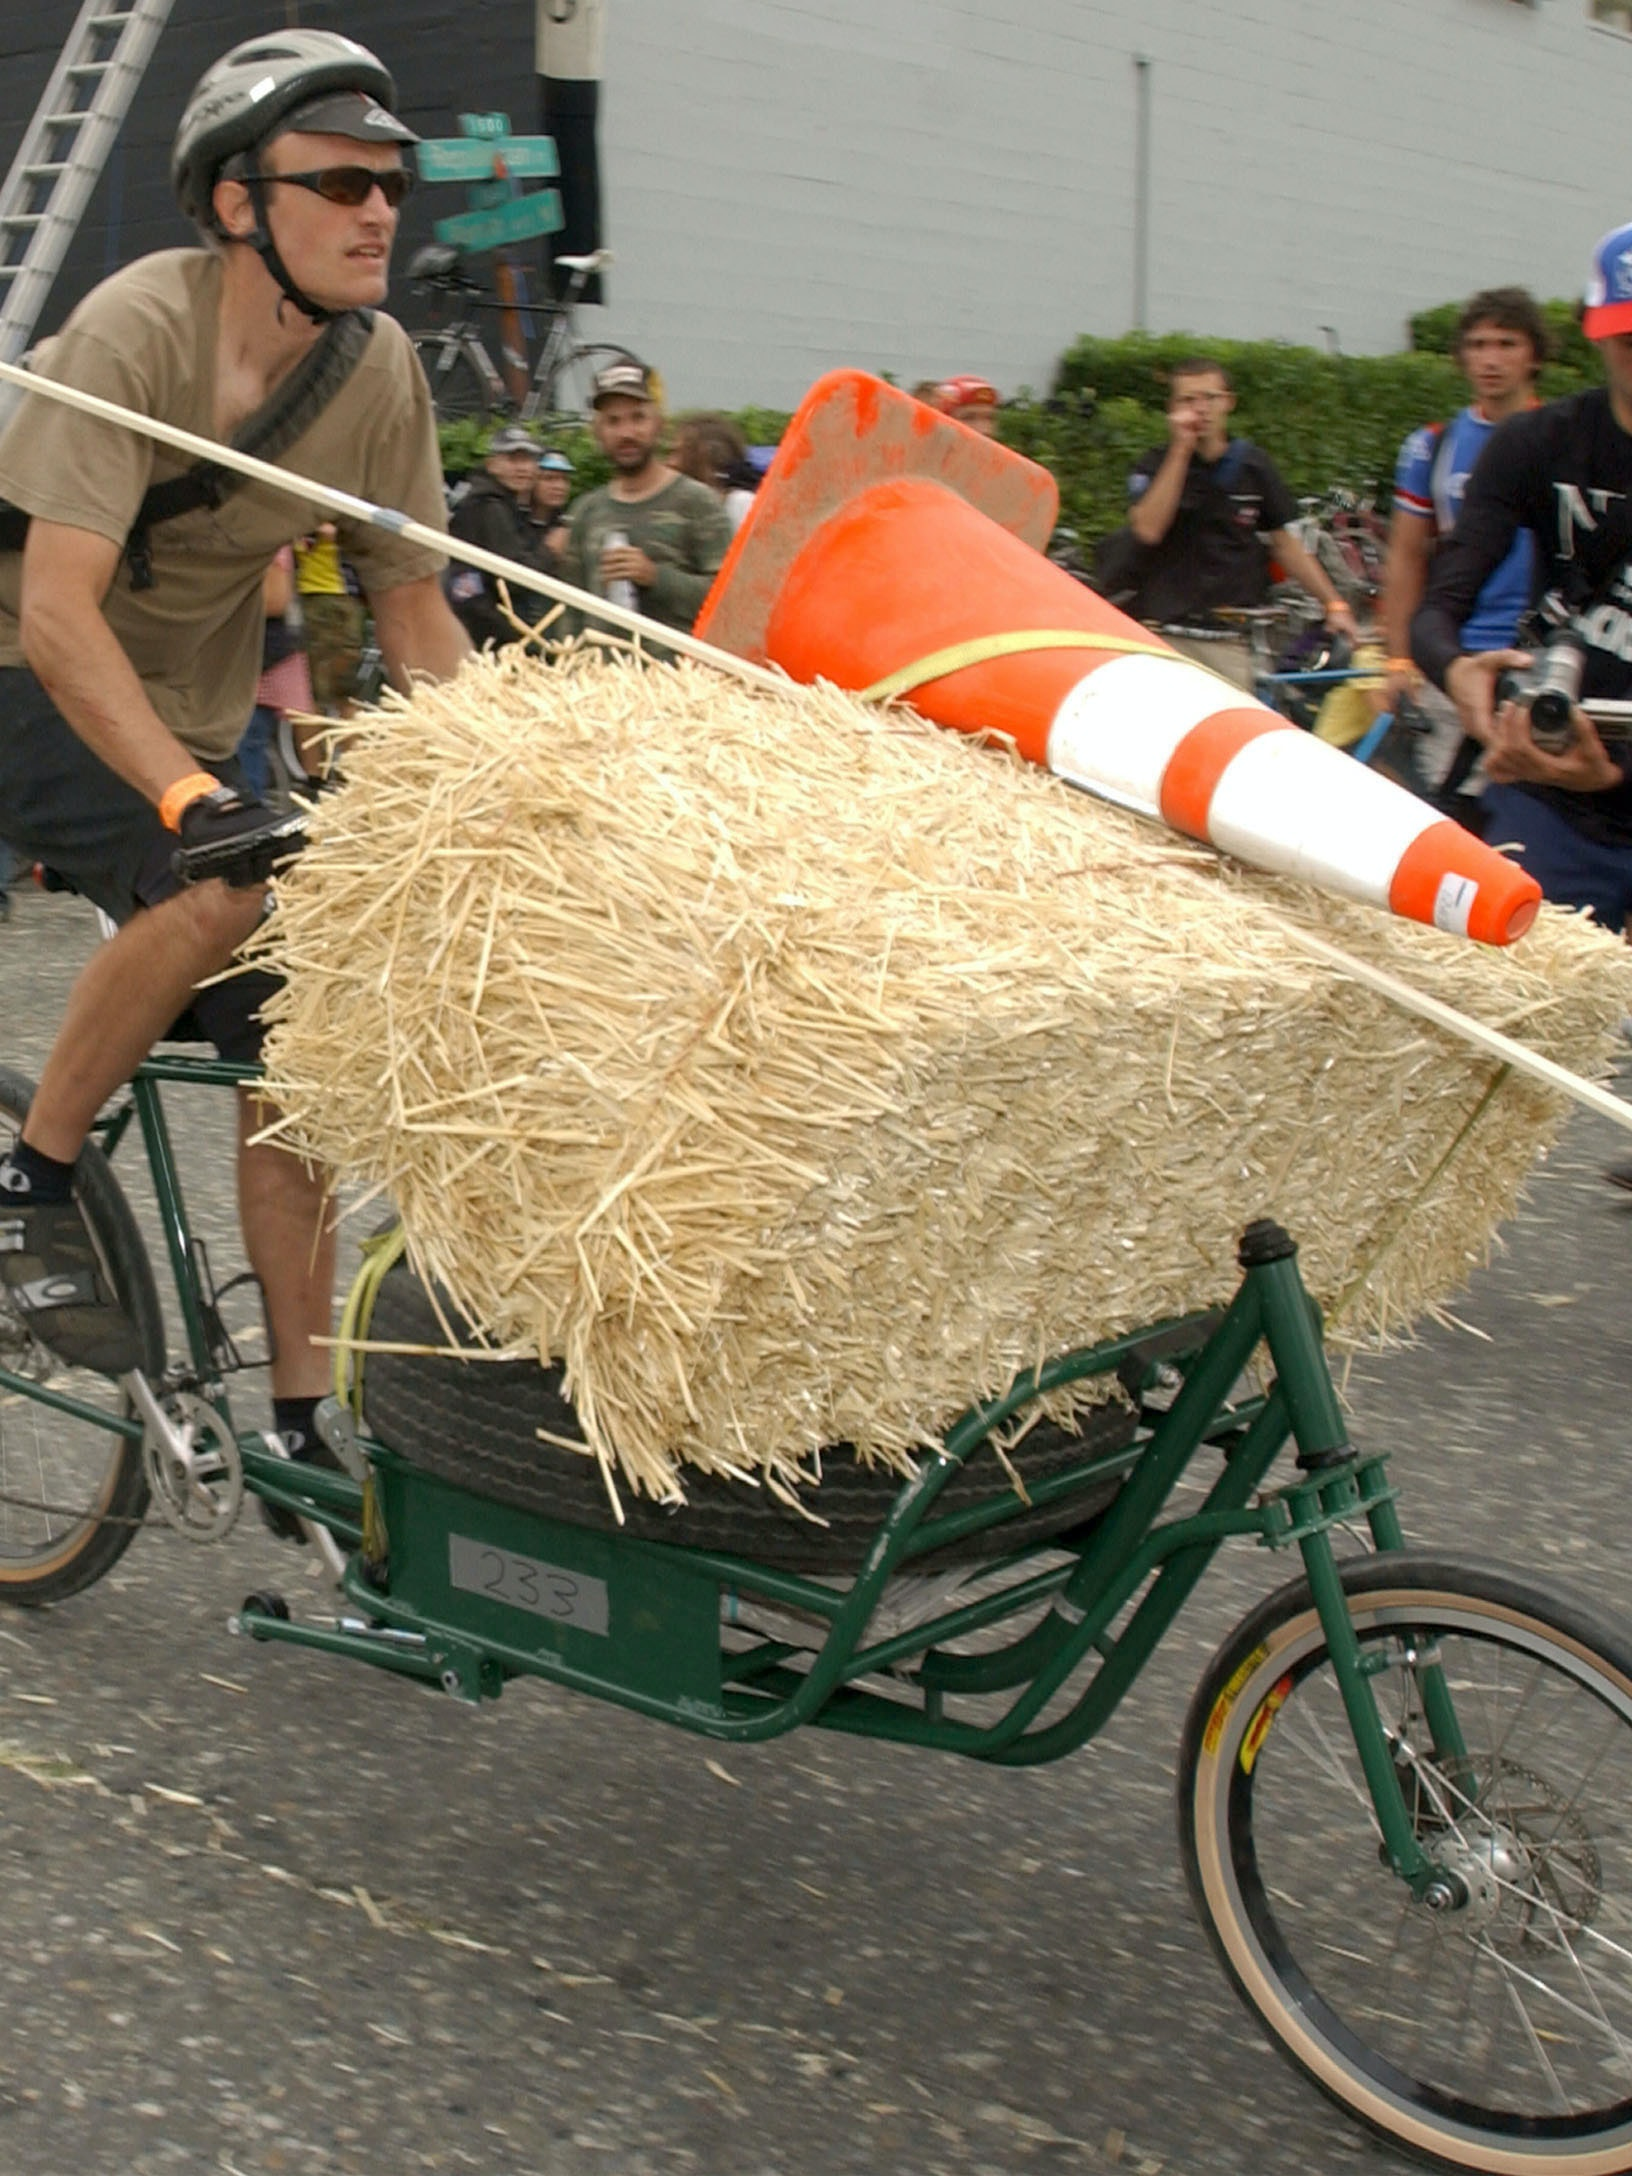 SEATTLE, WA - SEPTEMBER 14:  Robert Burchett, from Portland, Oregon,  struggles while carrying a bale of hay and a car tire on his bicycle at the 11th Annual Cycle Messenger Championships September 14, 2003 in Seattle, Washington. Burchett took part in the cargo race in which messengers had to pick up and drop off a variety of packages while battling hills, curbs, and hazards such as railroad tracks. There were over 600 participants from over six countries at the three day event.  (Photo by Ron Wurzer/Getty Images)